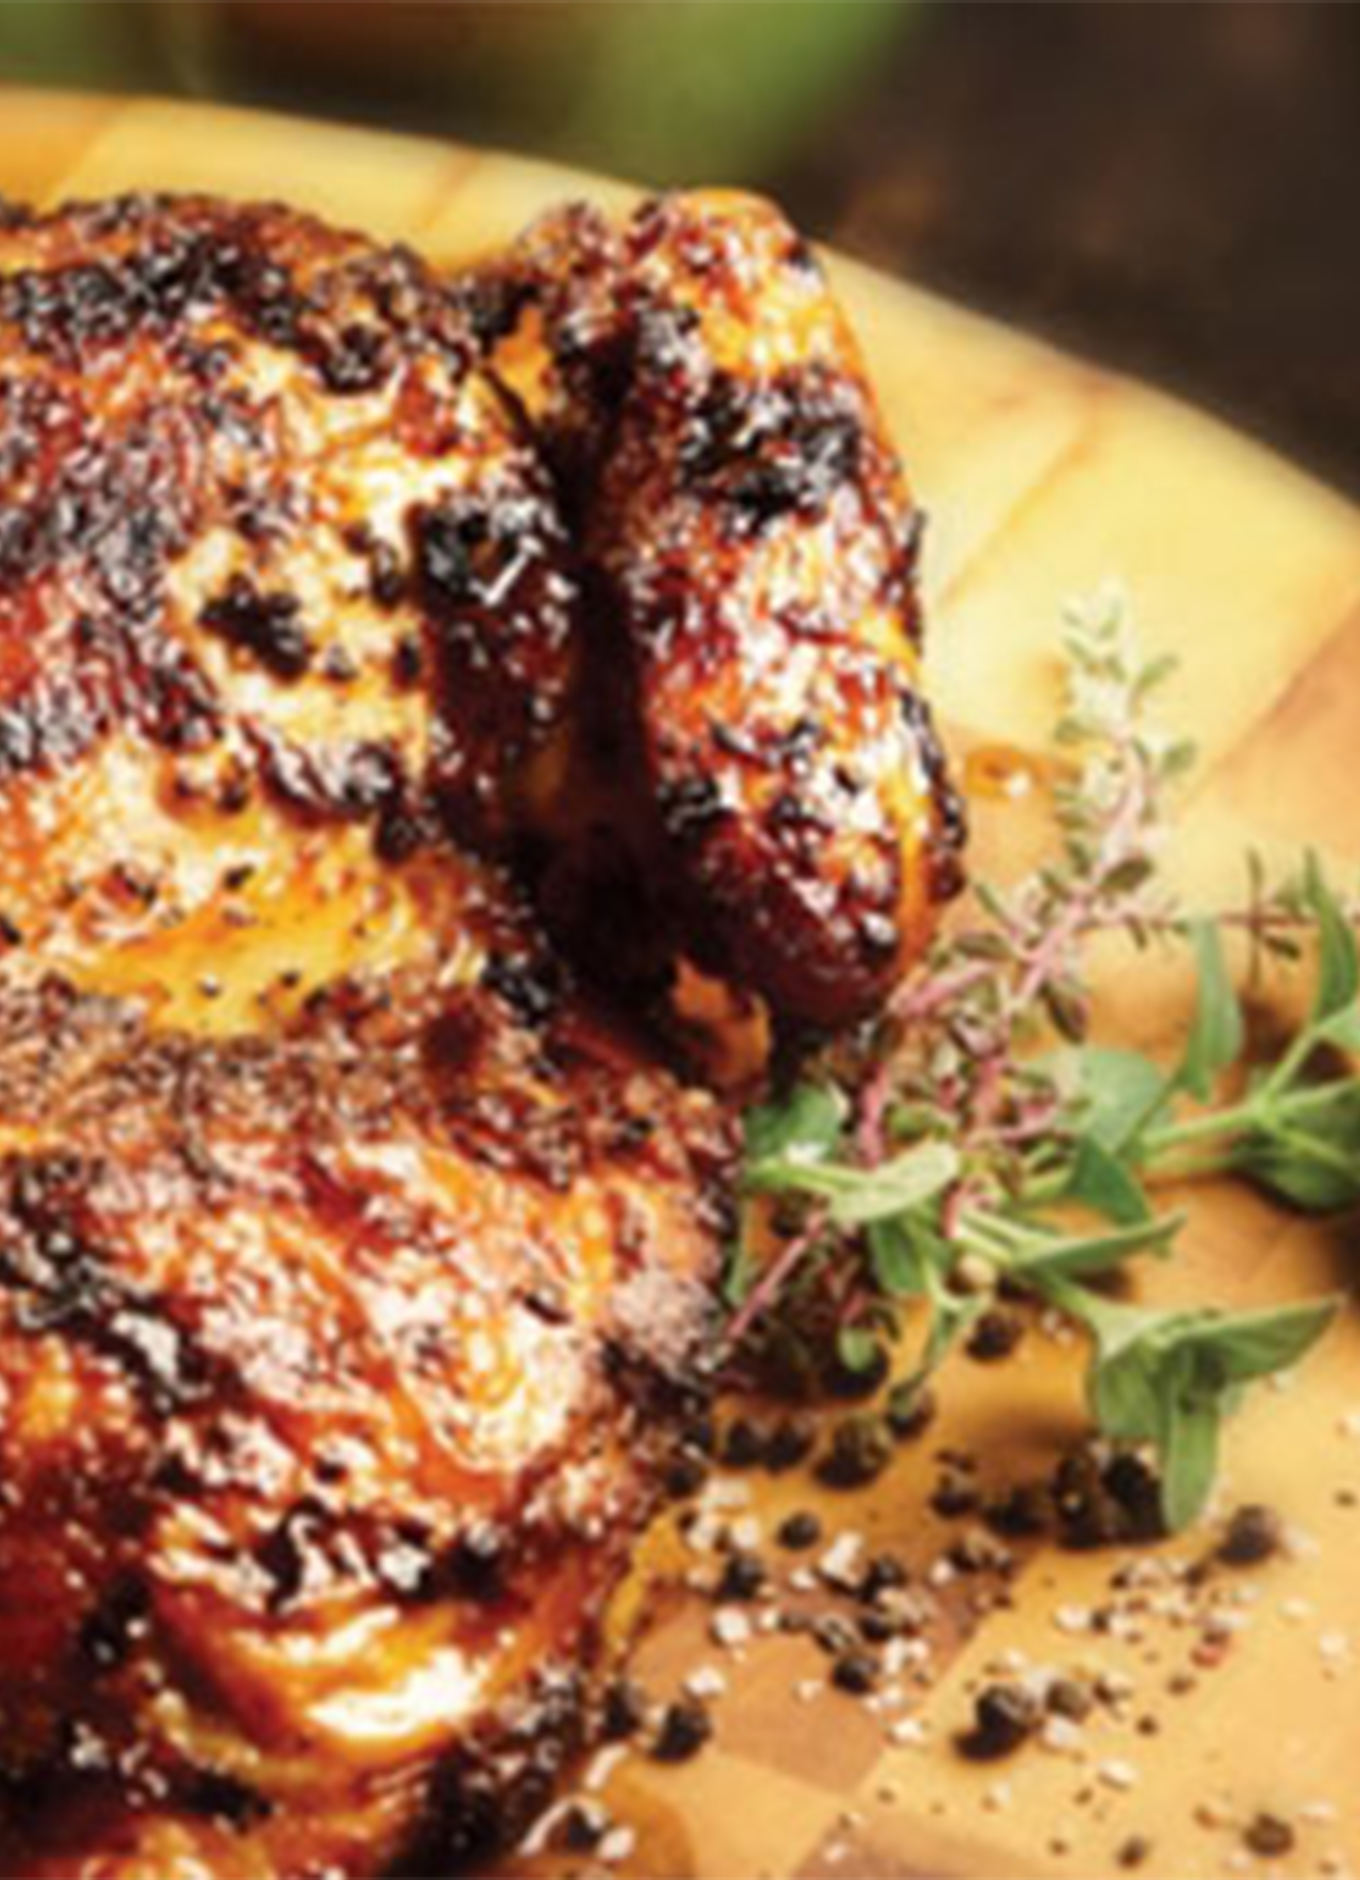 A butterflied and grilled whole chicken.